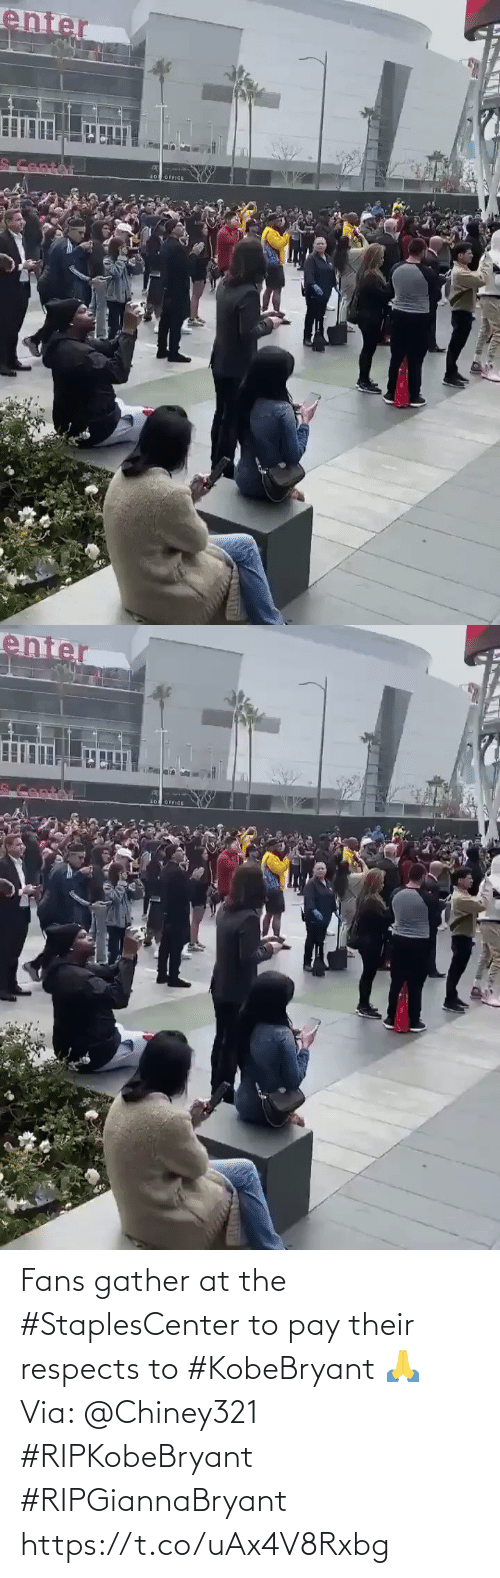 At: Fans gather at the #StaplesCenter to pay their respects to #KobeBryant 🙏 Via: @Chiney321 #RIPKobeBryant #RIPGiannaBryant https://t.co/uAx4V8Rxbg